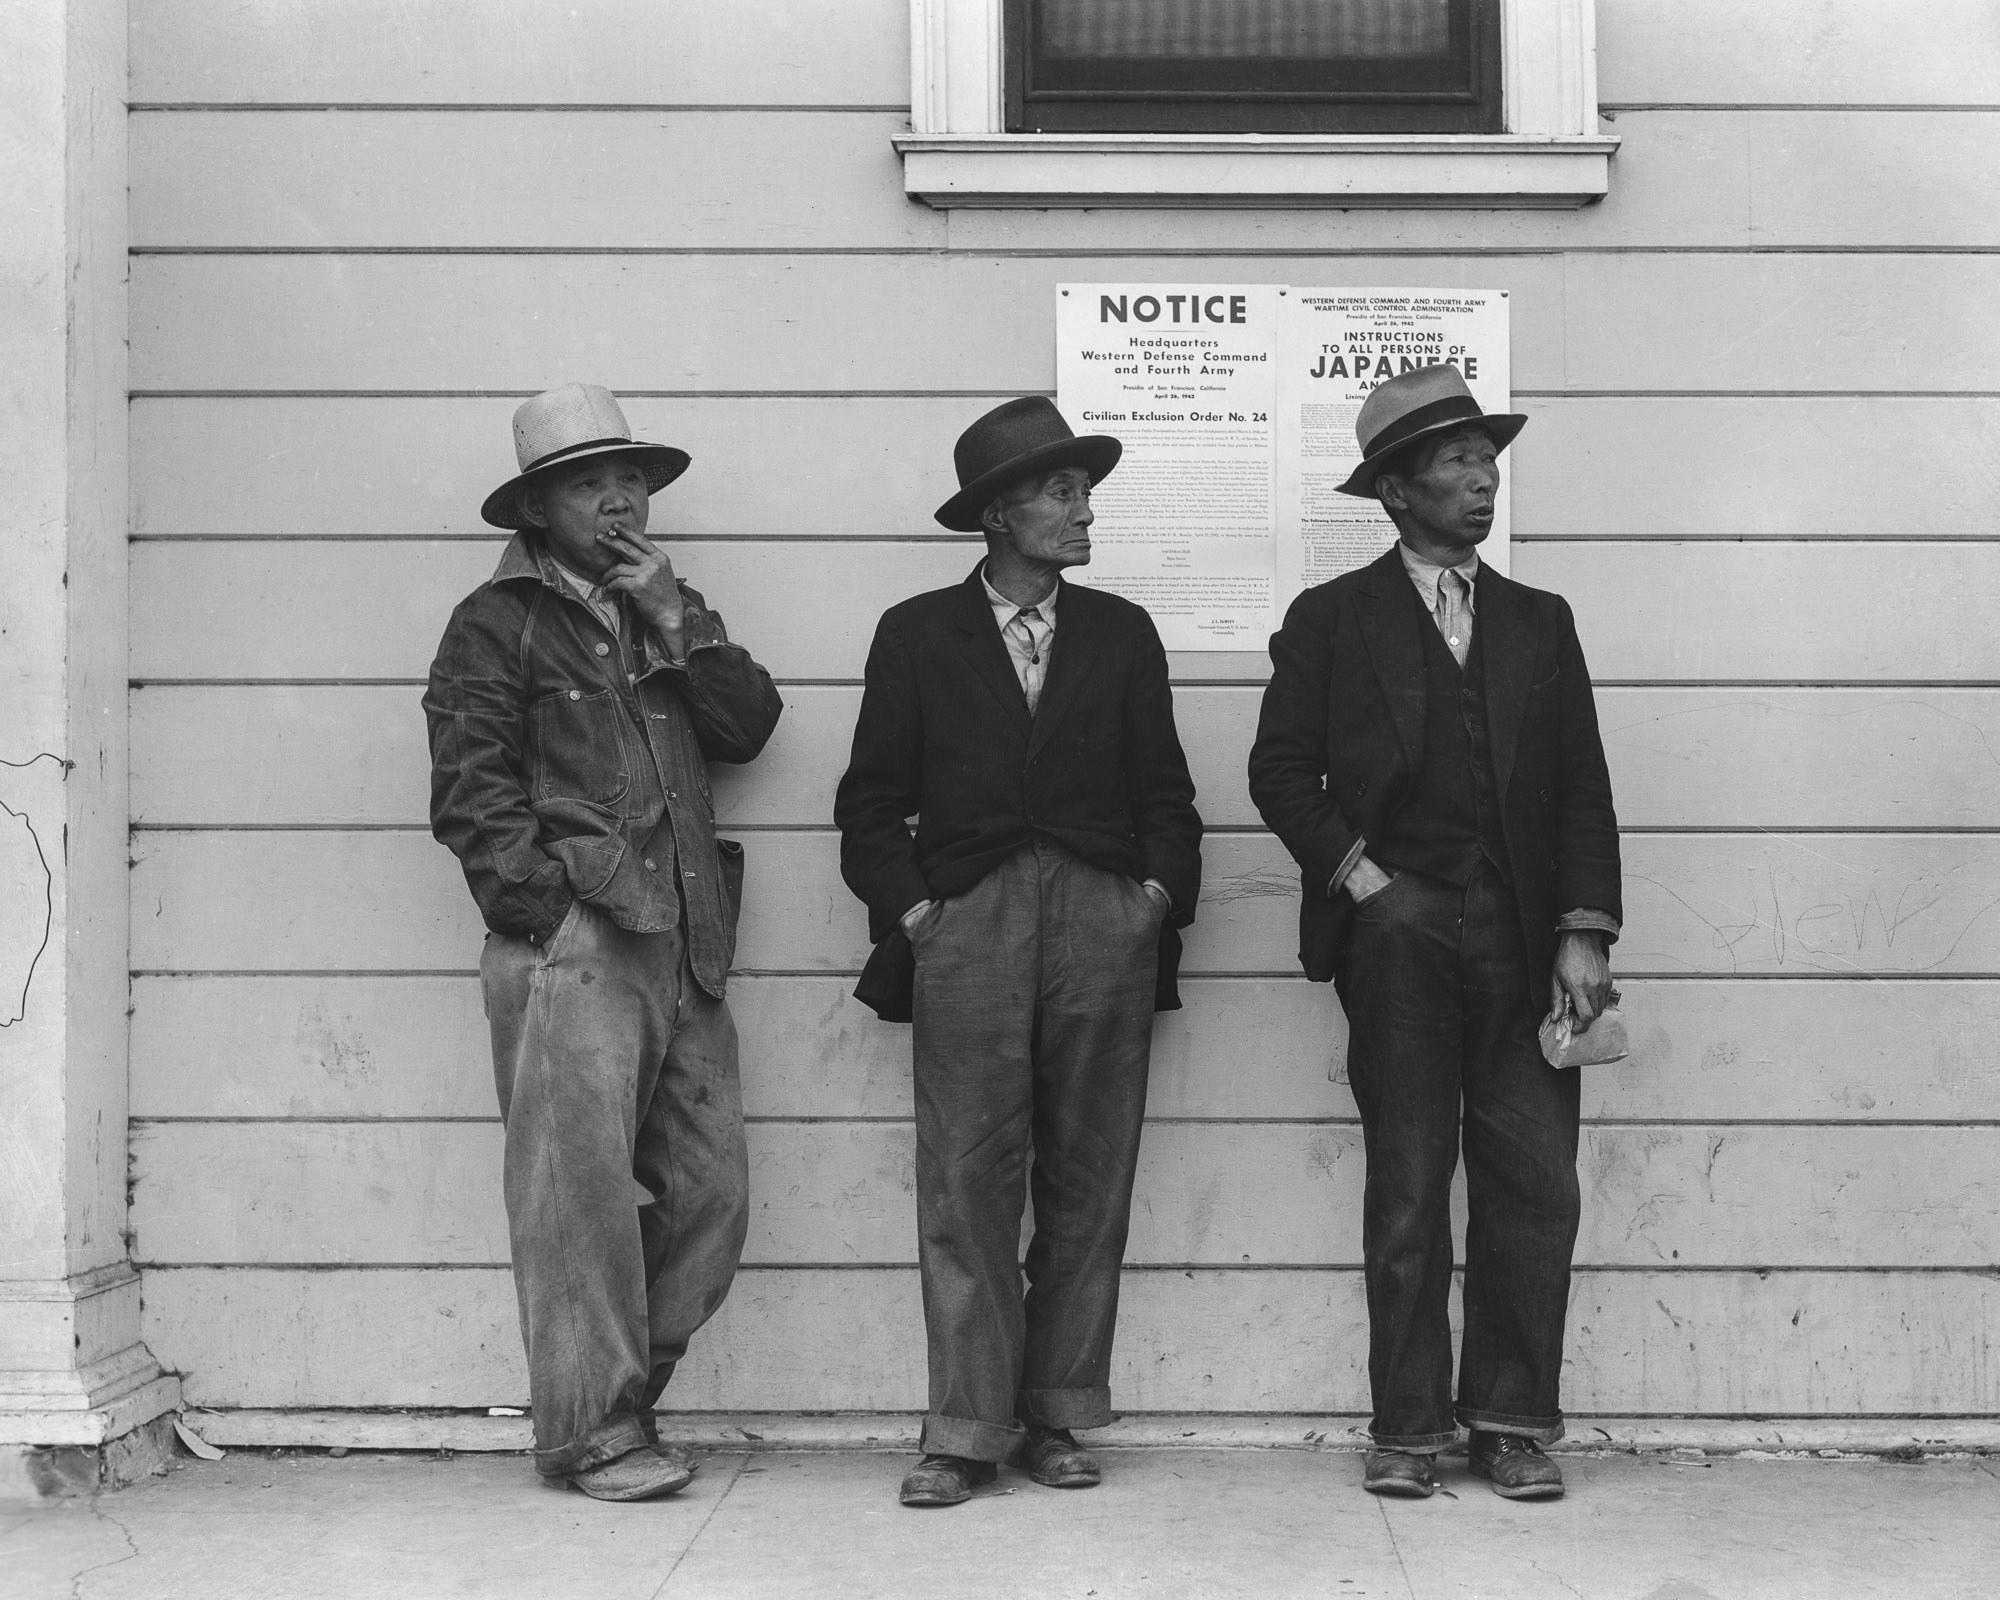 PRINT AVAILABLE   April 28, 1942 — Byron, California. Field laborers of Japanese ancestry in front of Wartime Civil Control Administration station where they have come for instructions and assistance in regard to their evacuation due in three days under Civilian Exclusion Order Number 24. This order affects 850 persons in this area. The men are now waiting for the truck which will take them, with the rest of the field crew, back to the large-scale delta ranch.